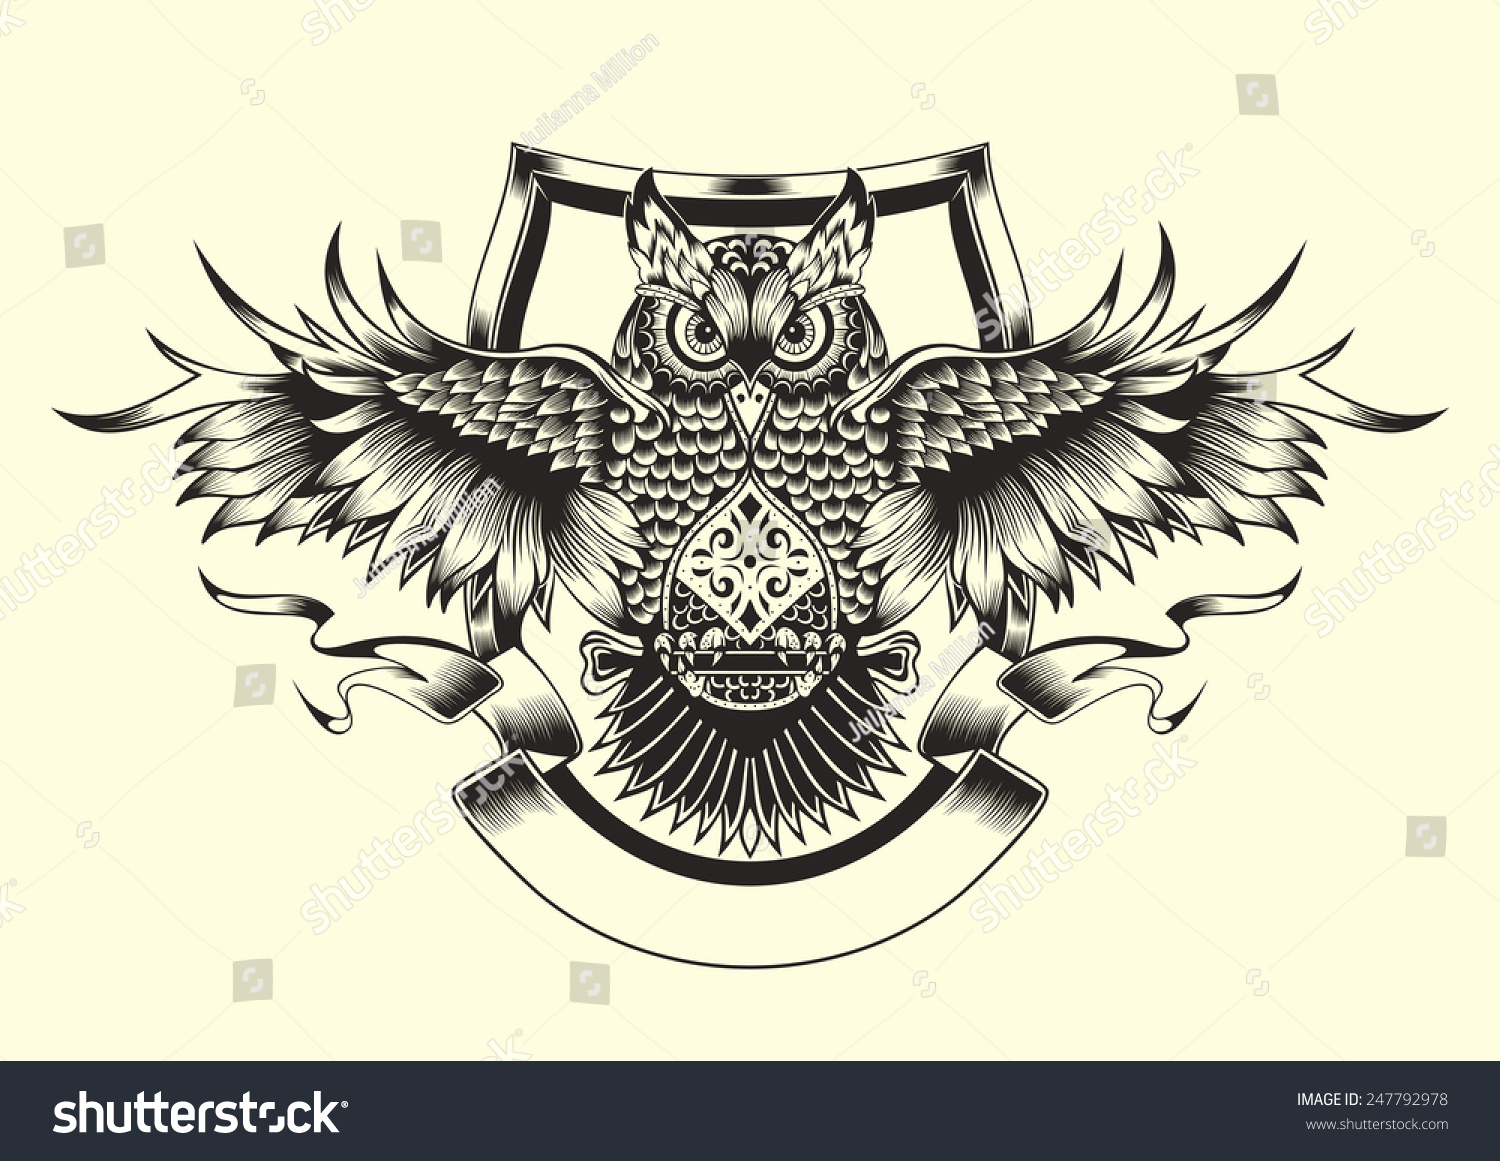 illustration owl black white style stock vector 247792978